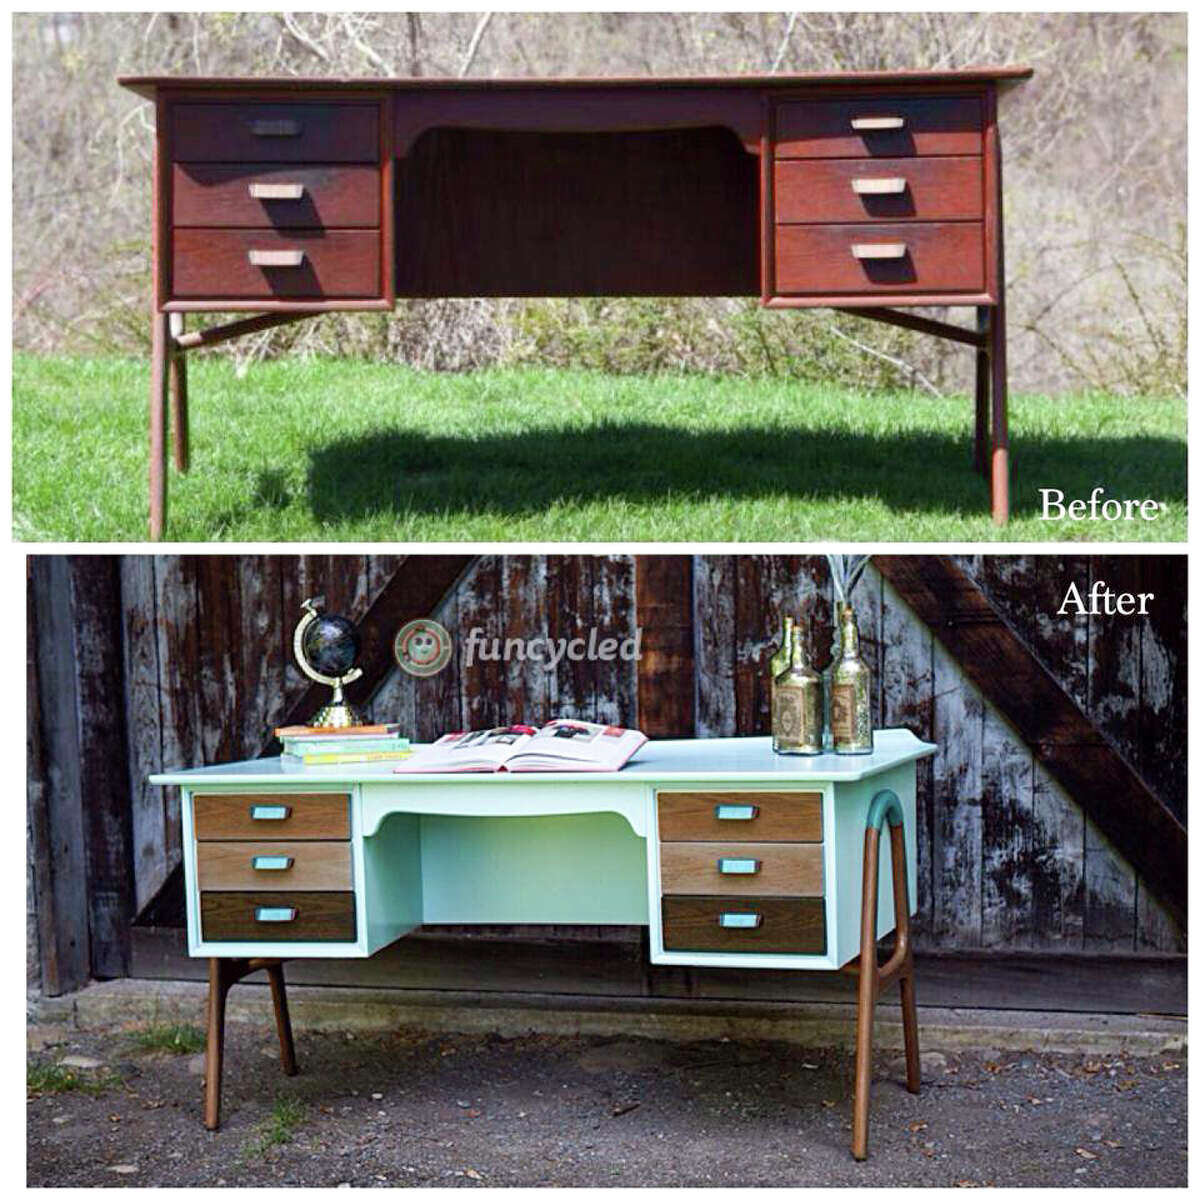 Before and after of a custom ordered furniture redo by Sarah Trop of FunCycled